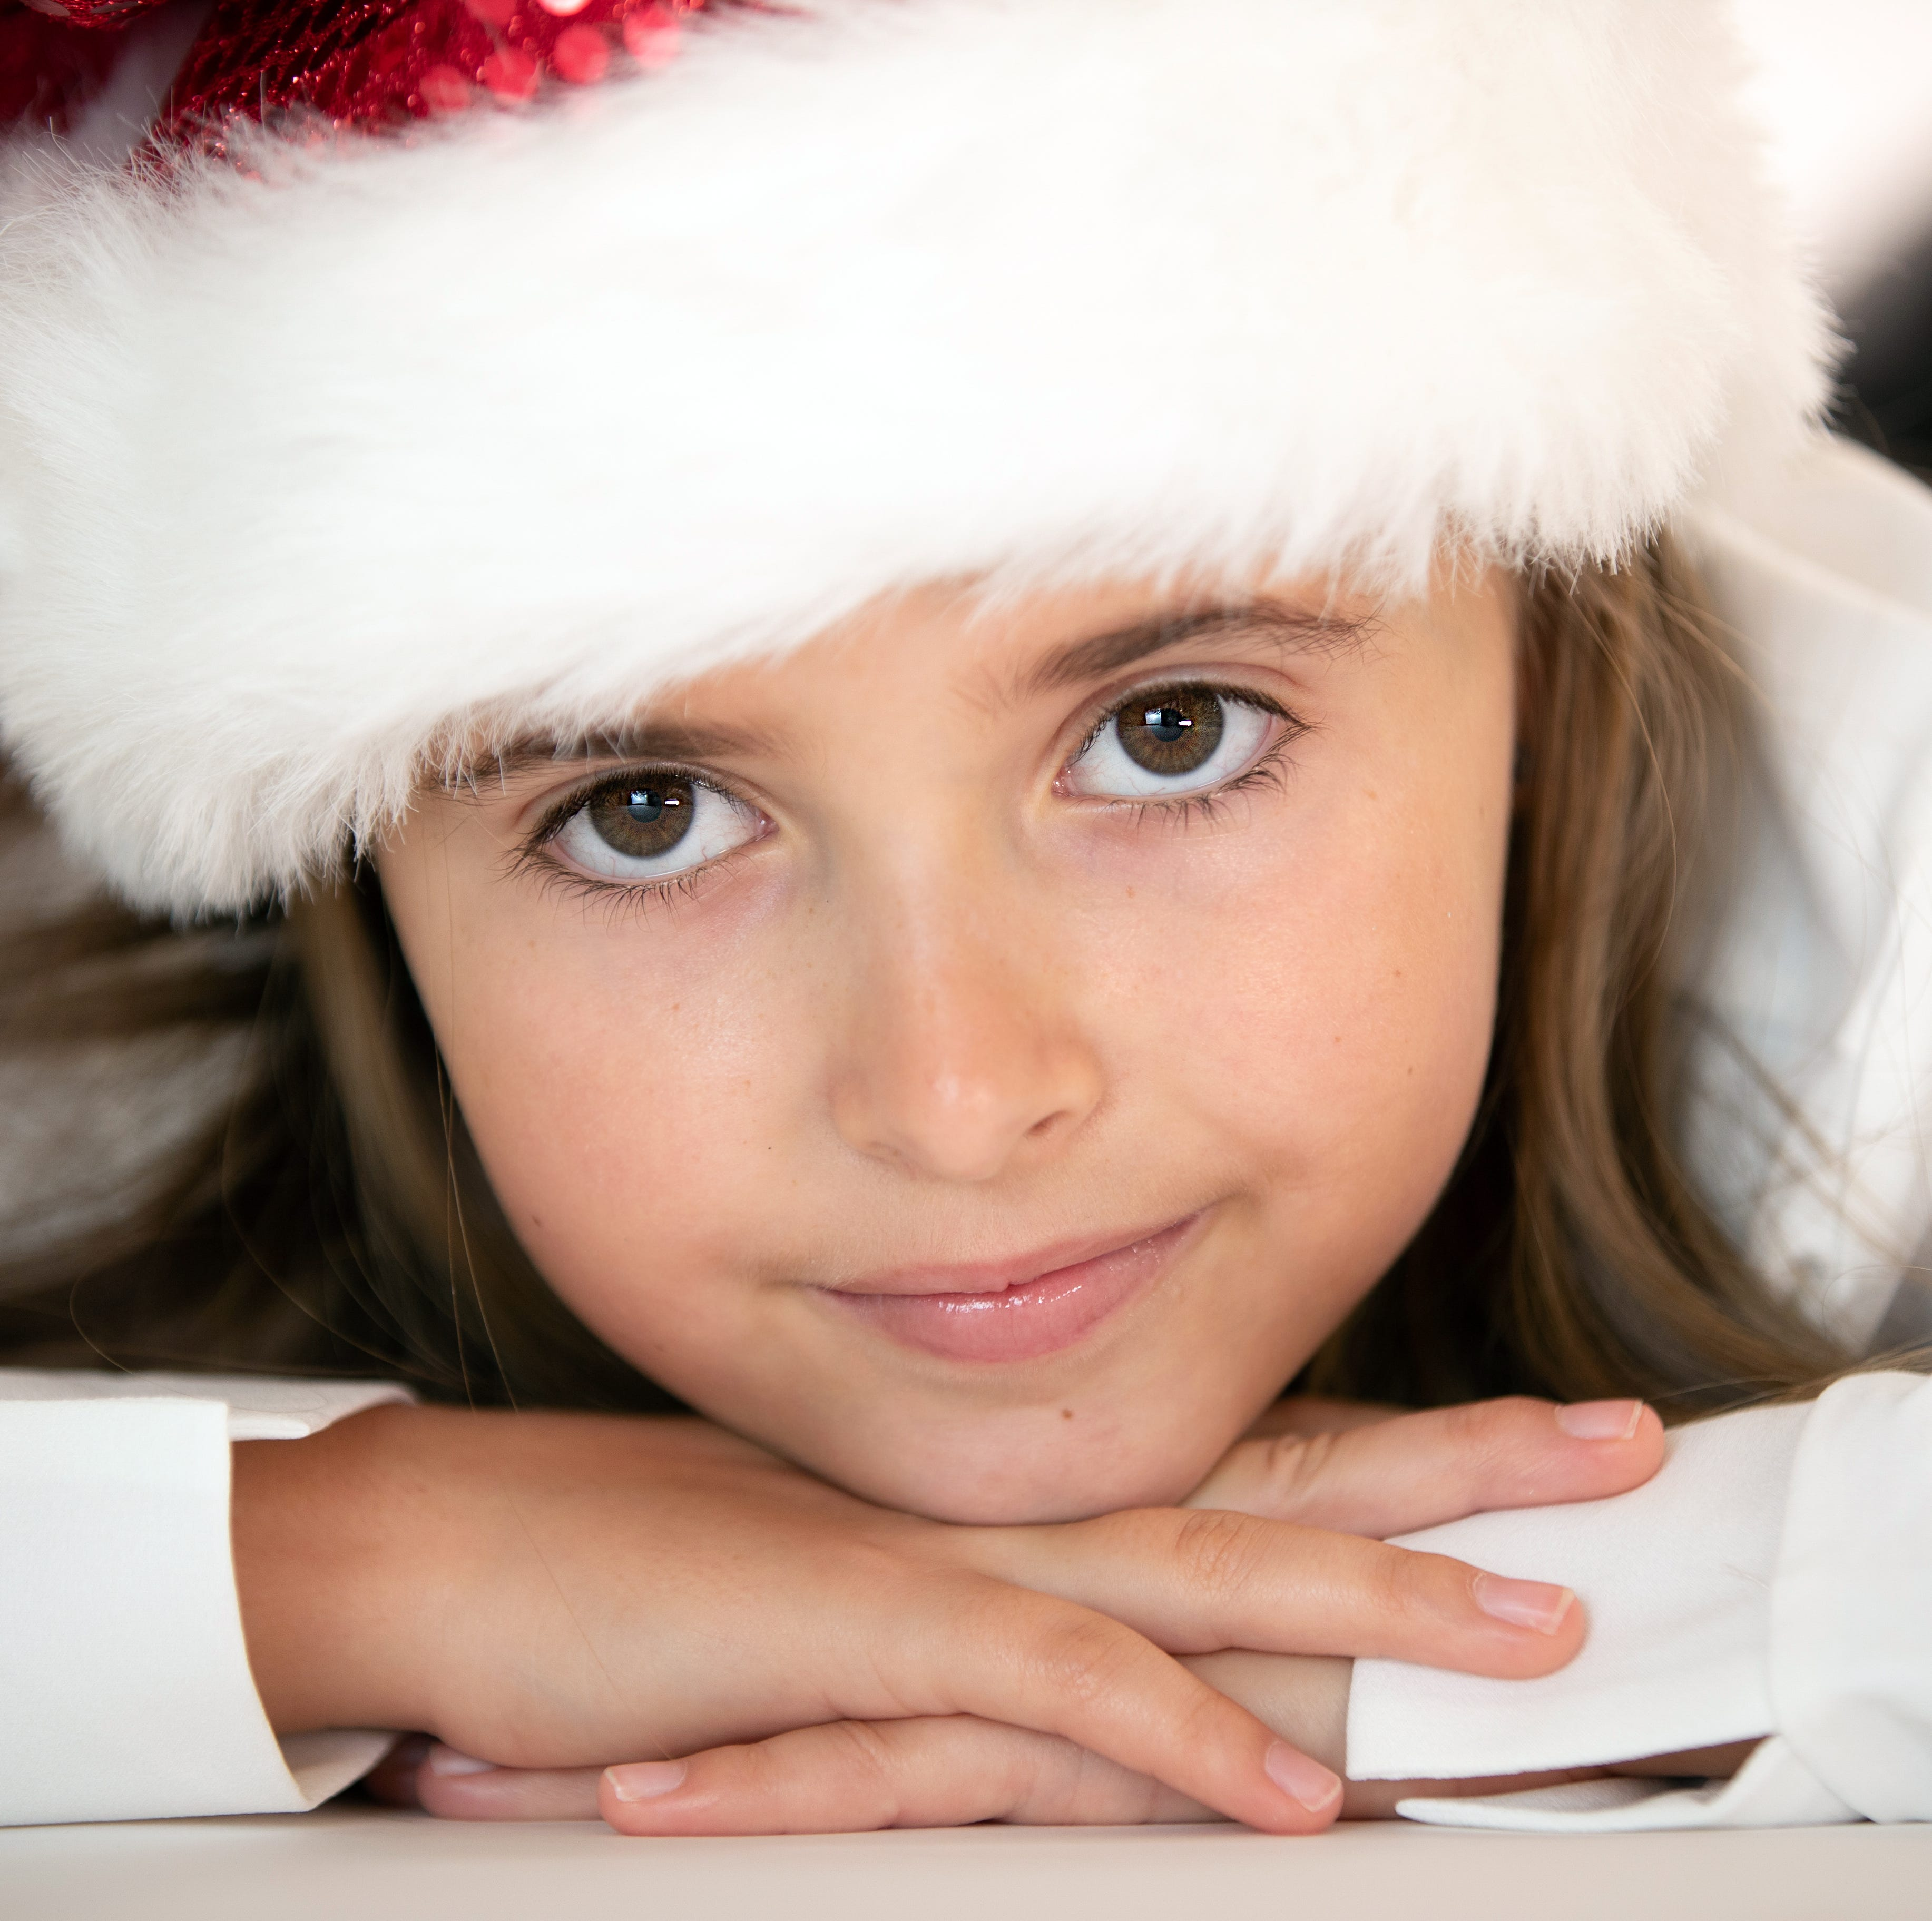 Naples fourth grader raises more than $13,000 with charity Christmas album